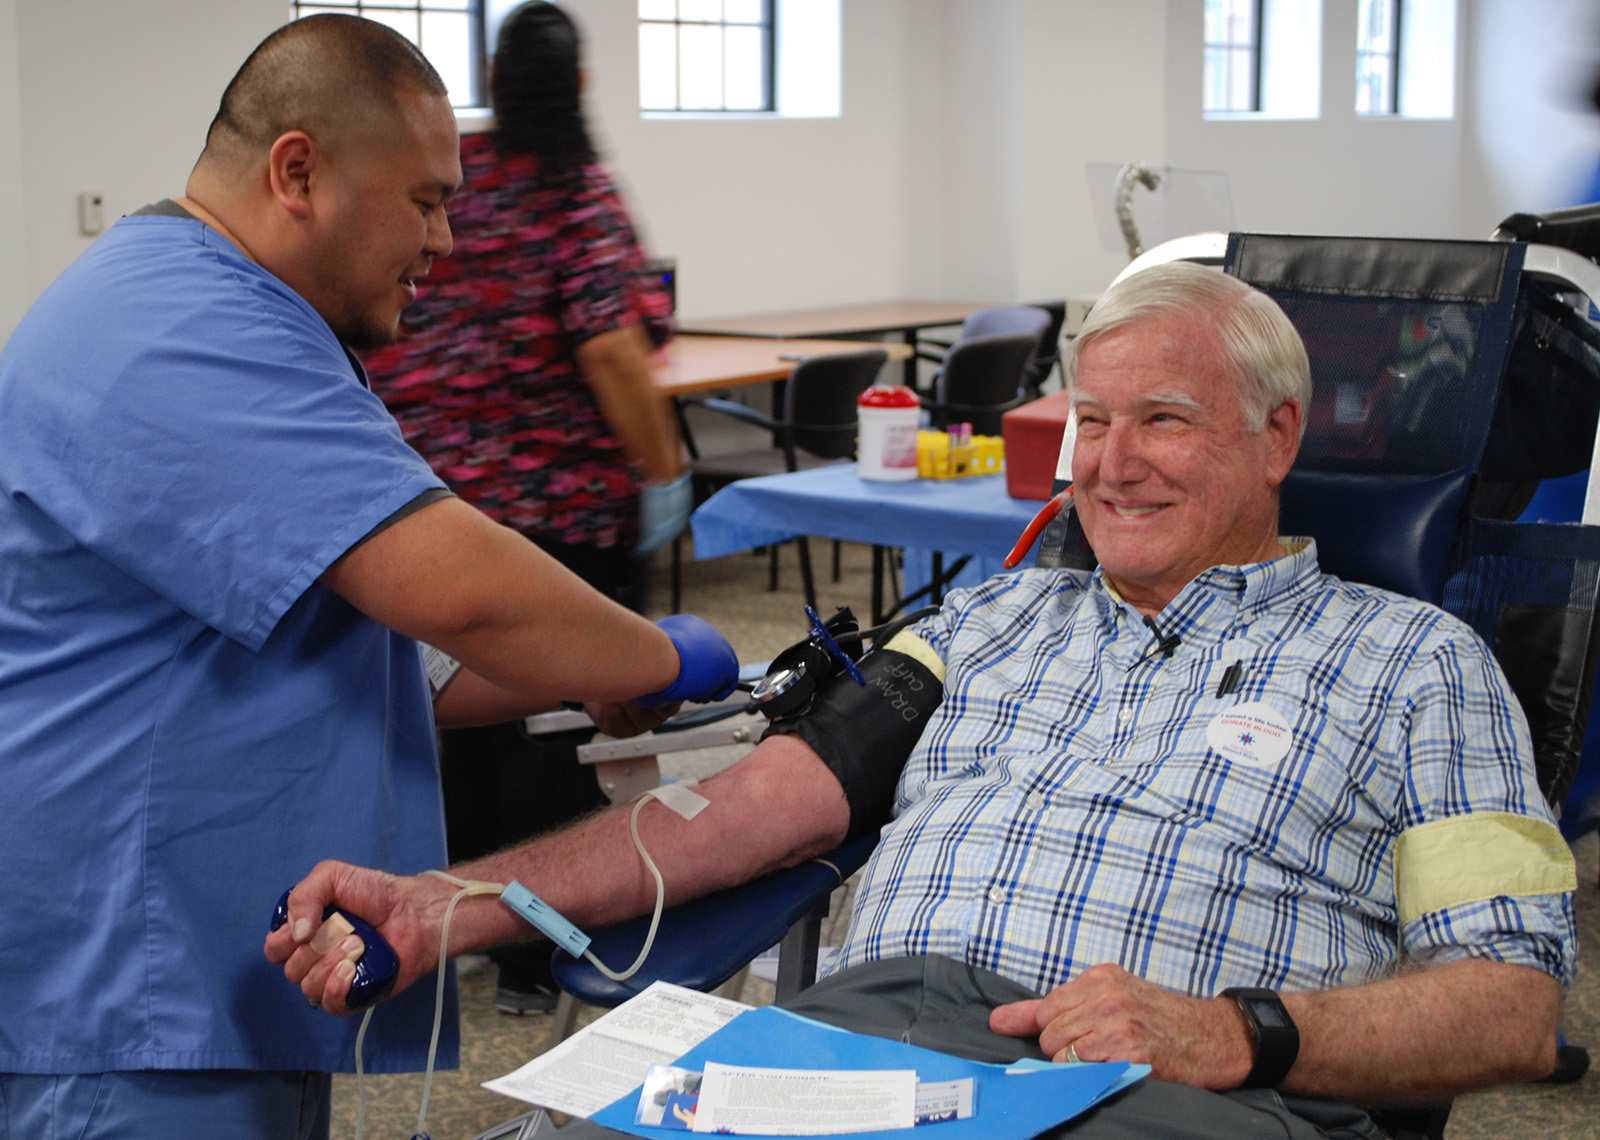 County Supervisor Greg Cox has donated more than 16 gallons of blood over the years.